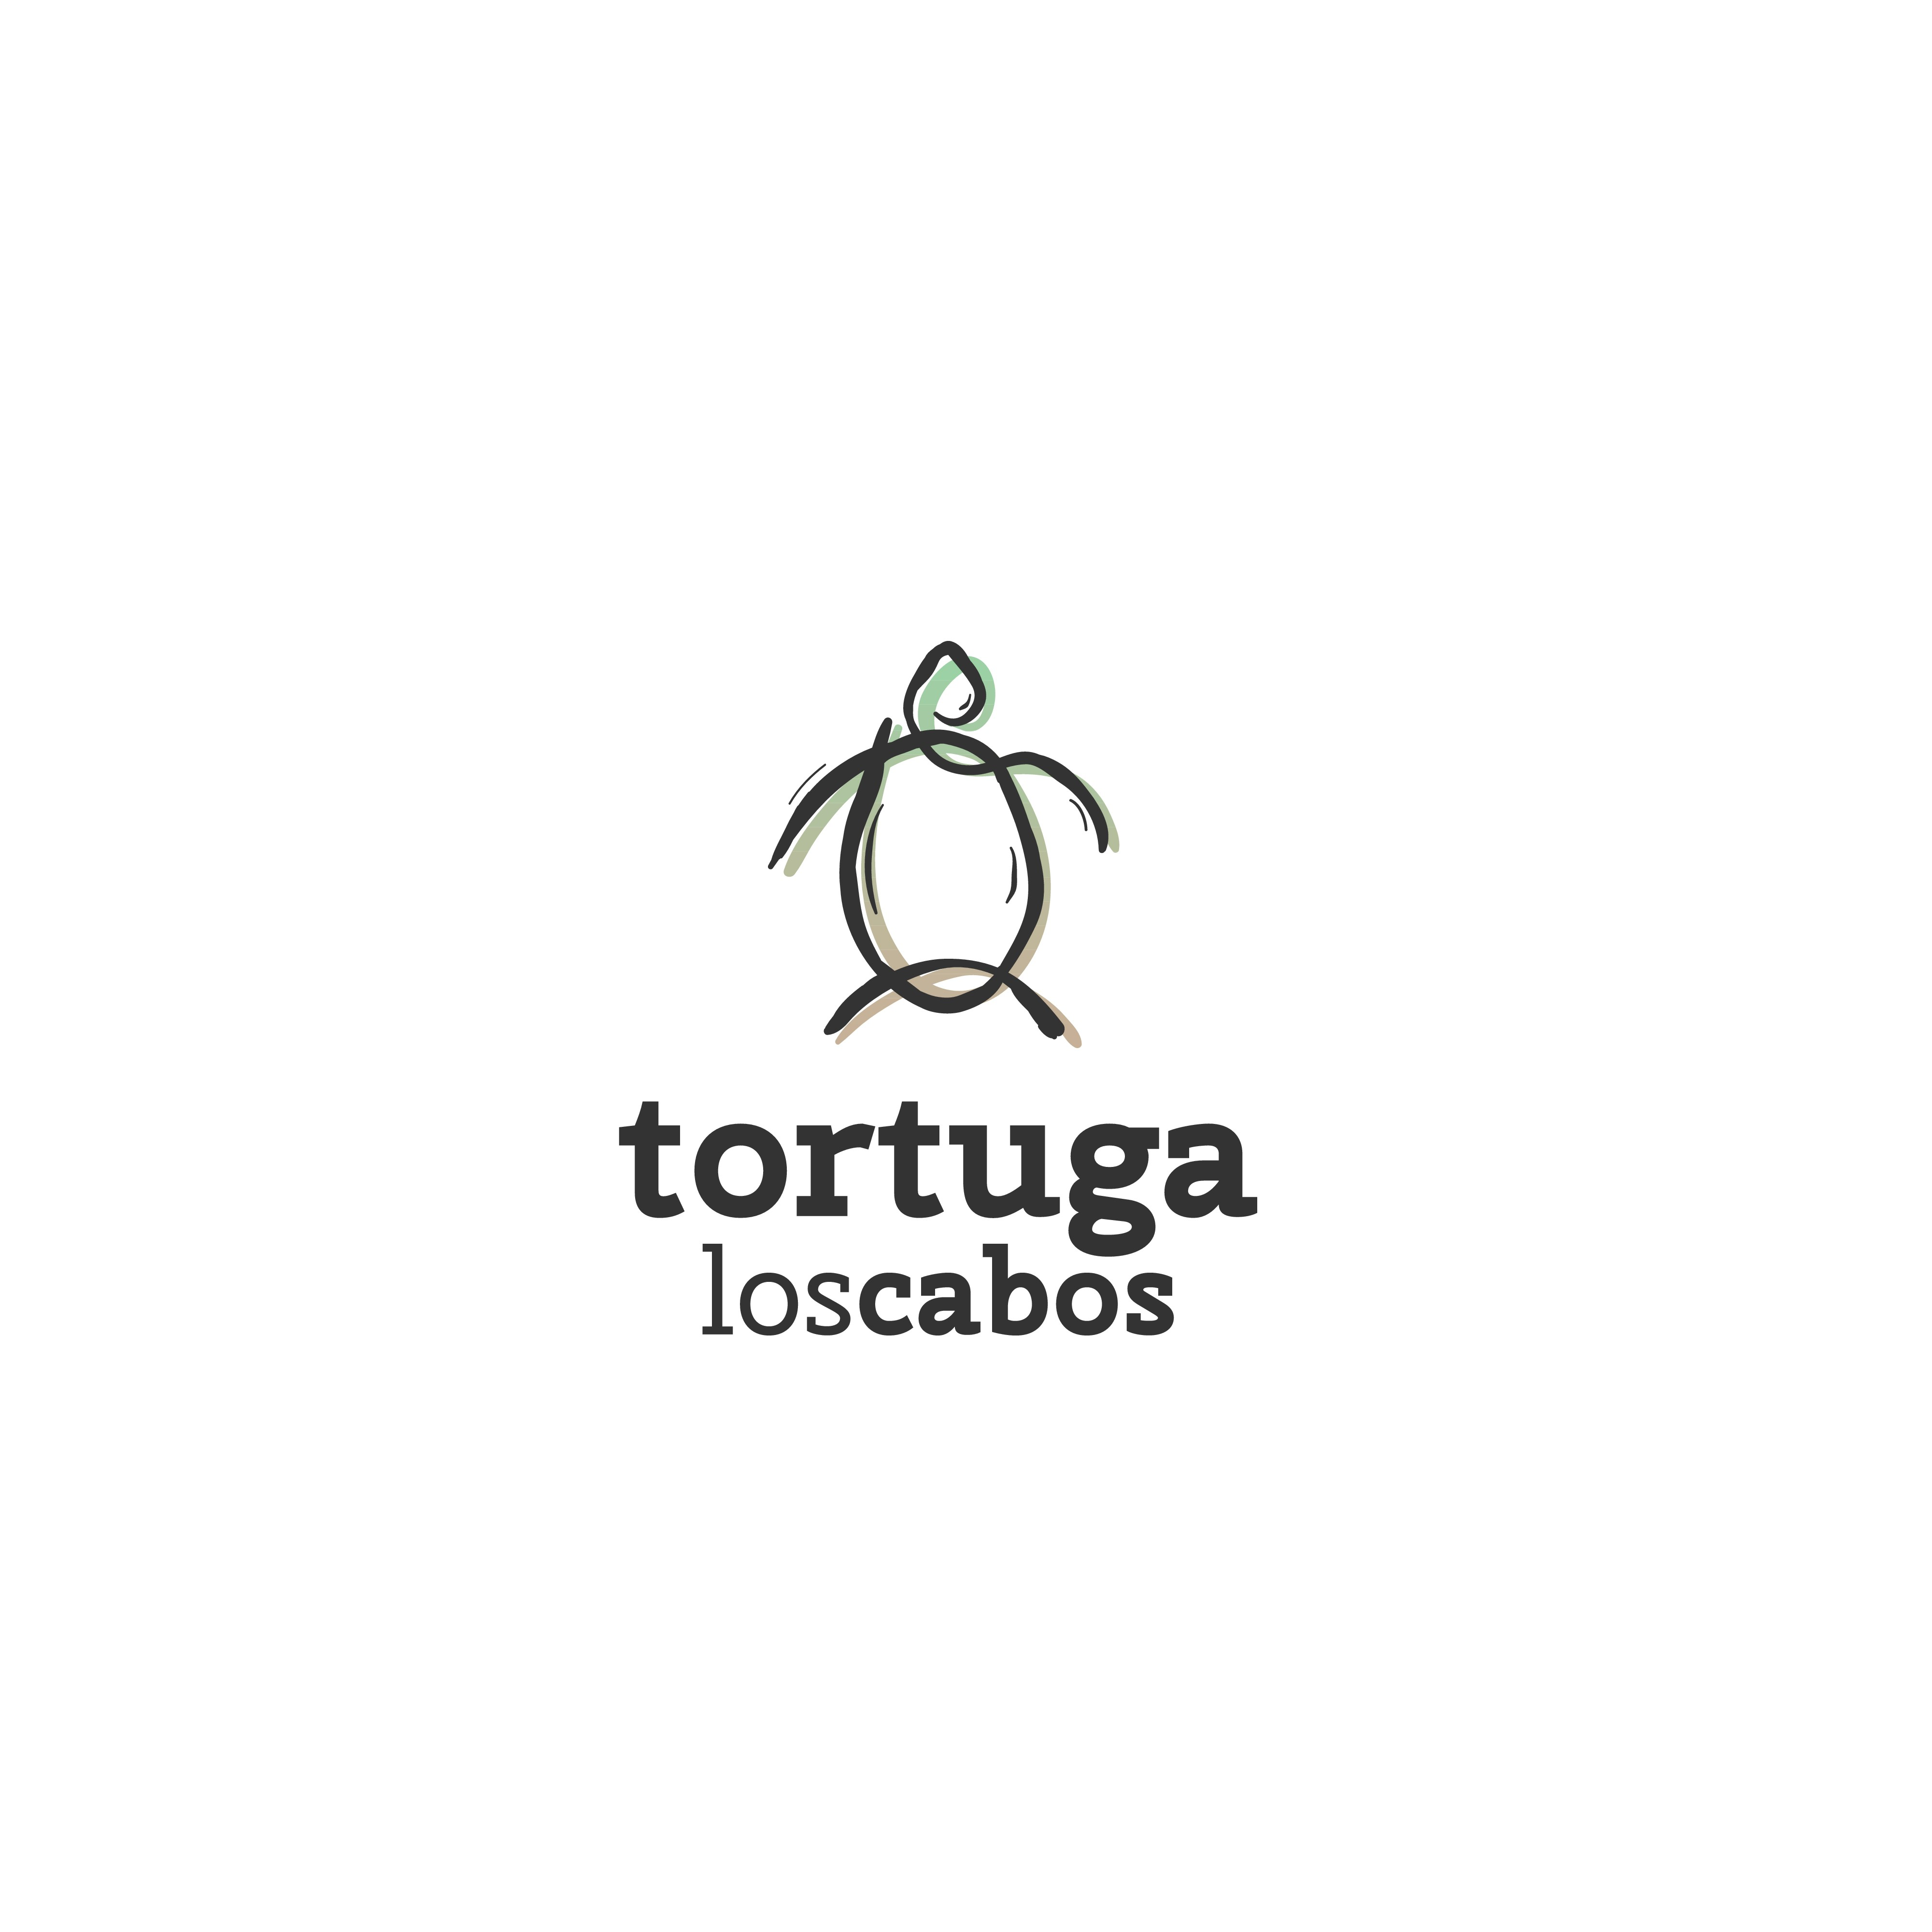 Create The Vision For The Next Lifestyle Brand - Tortuga Los Cabos